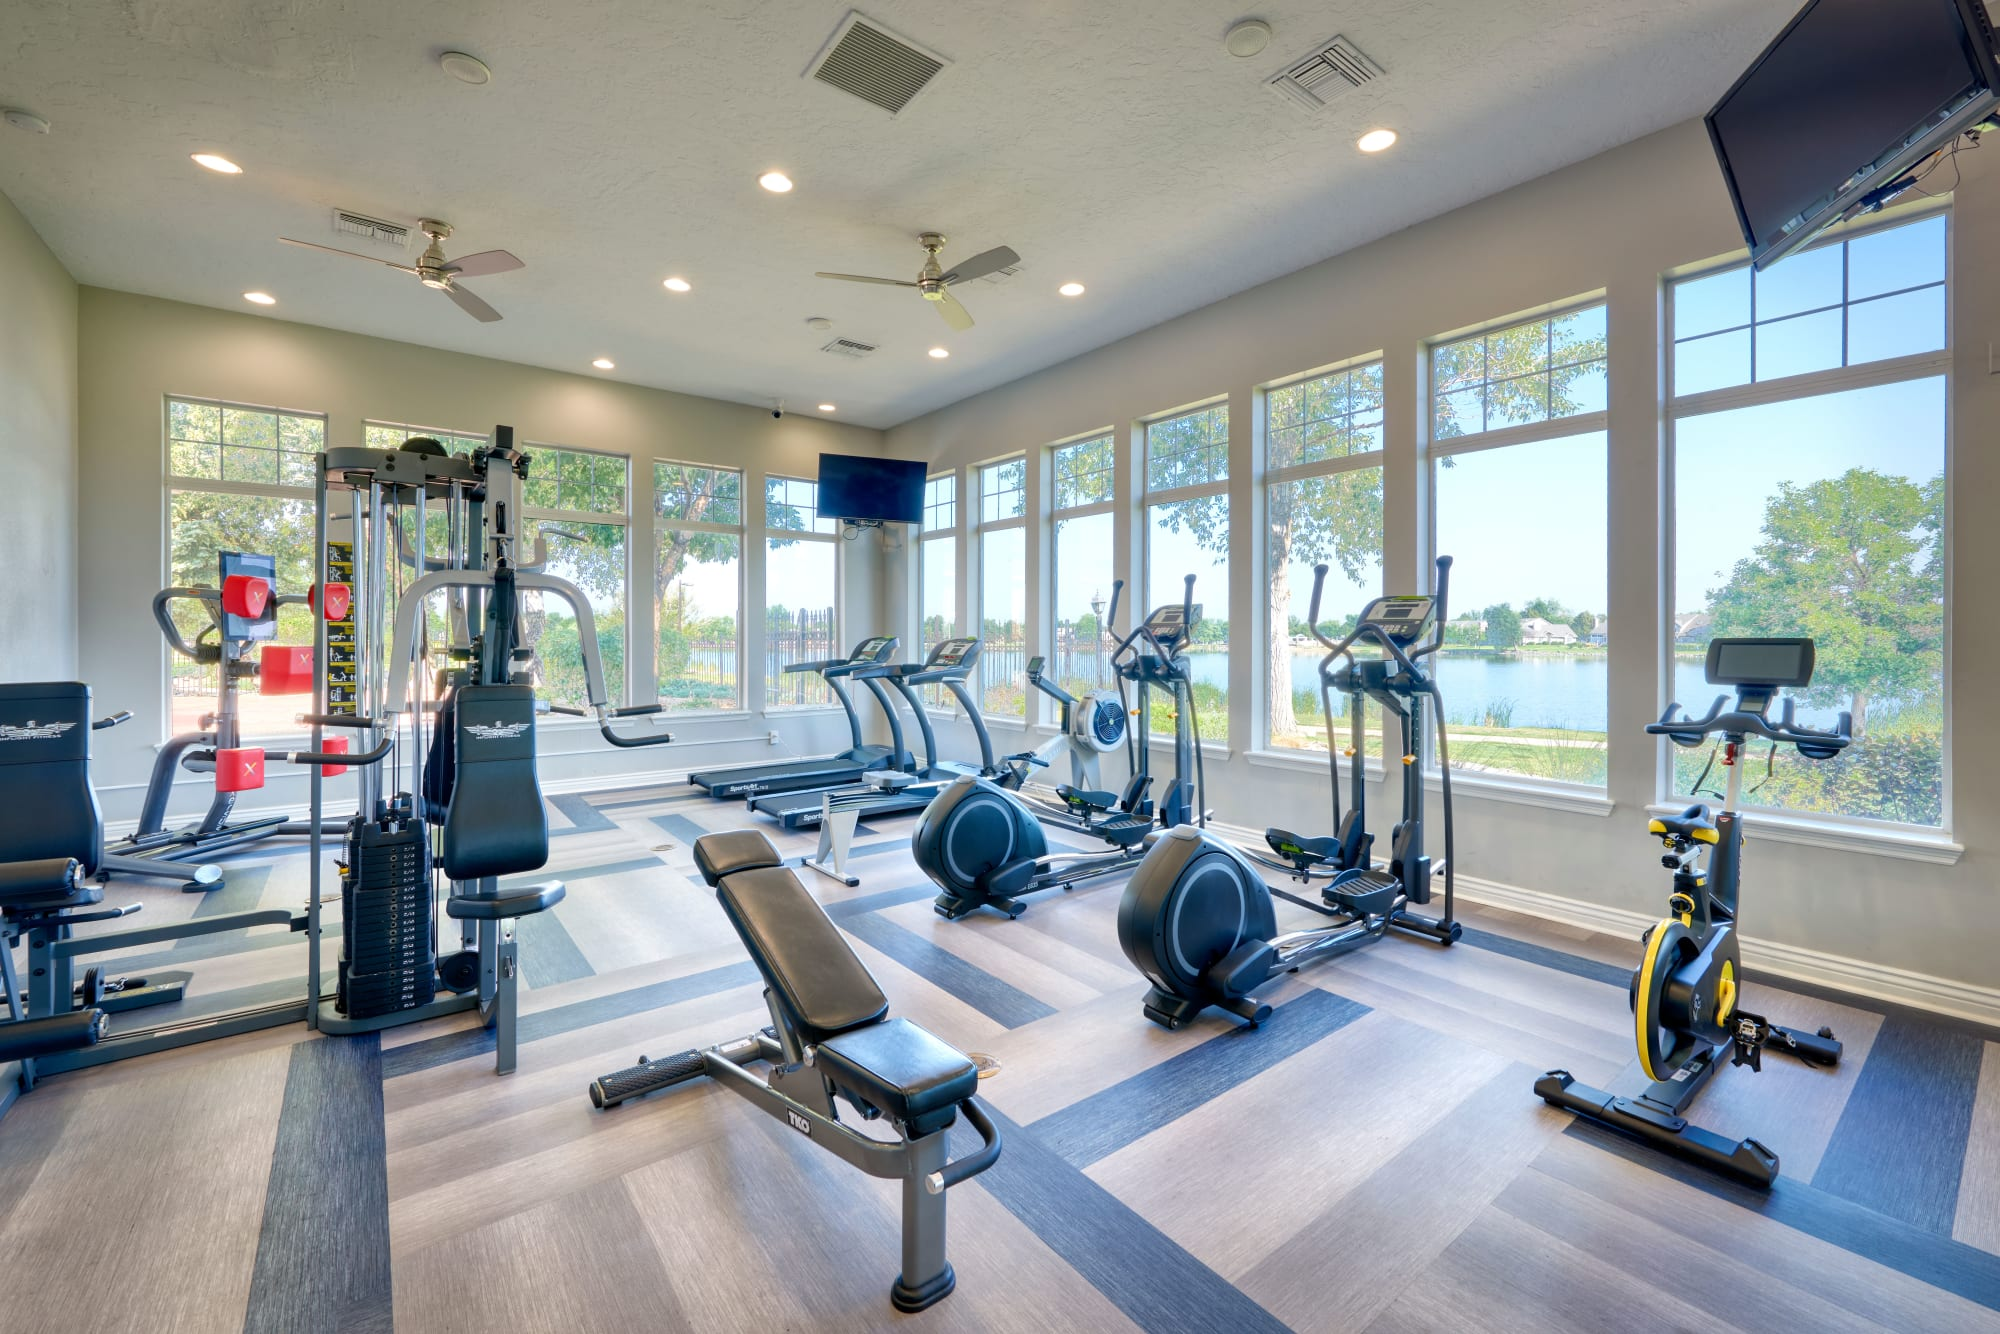 Fully equipped fitness center with lake views at Promenade at Hunter's Glen Apartments in Thornton, Colorado